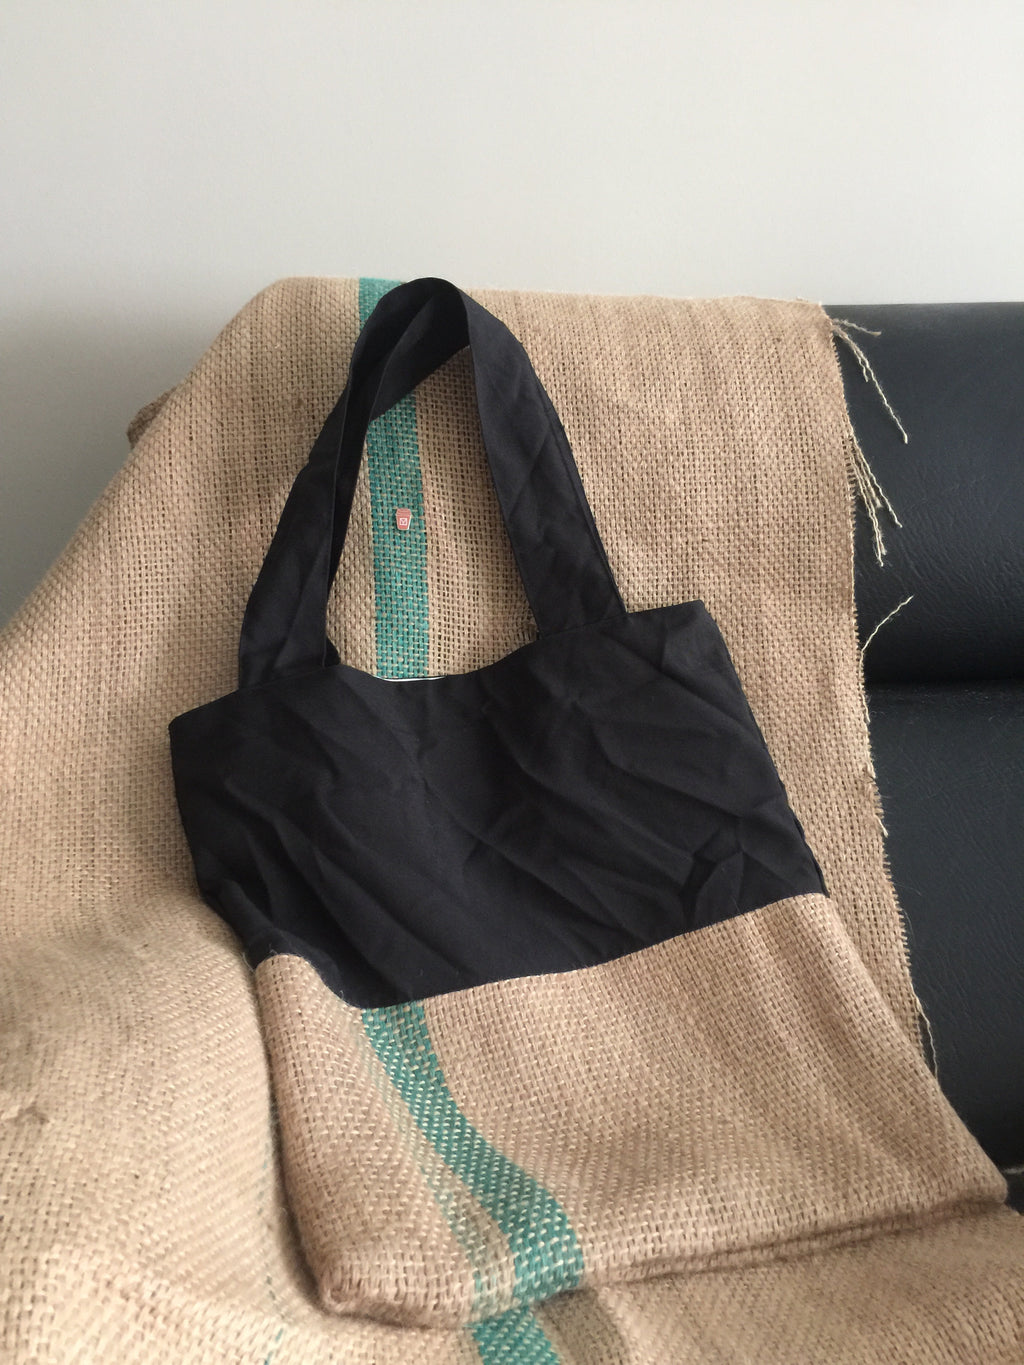 TOTEdo Na TOTEs Bag - Yardstick Coffee Collab - Half & Half